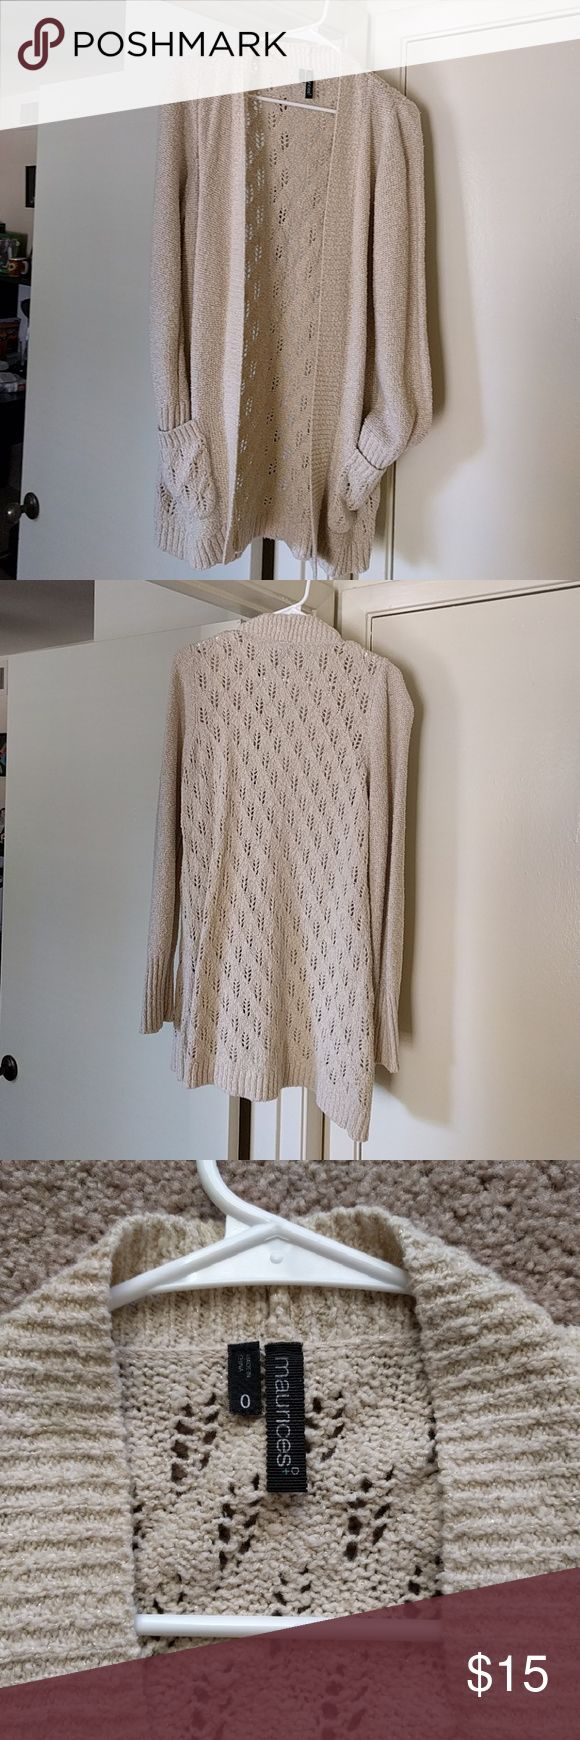 Tan Maurice's plus size cardigan Plus size 0/ regular size XLL. Tan with gold accent material. Very soft and cozy. Two pockets in the front, no buttons. Cute with jeans or leggings! Maurices Sweaters Cardigans